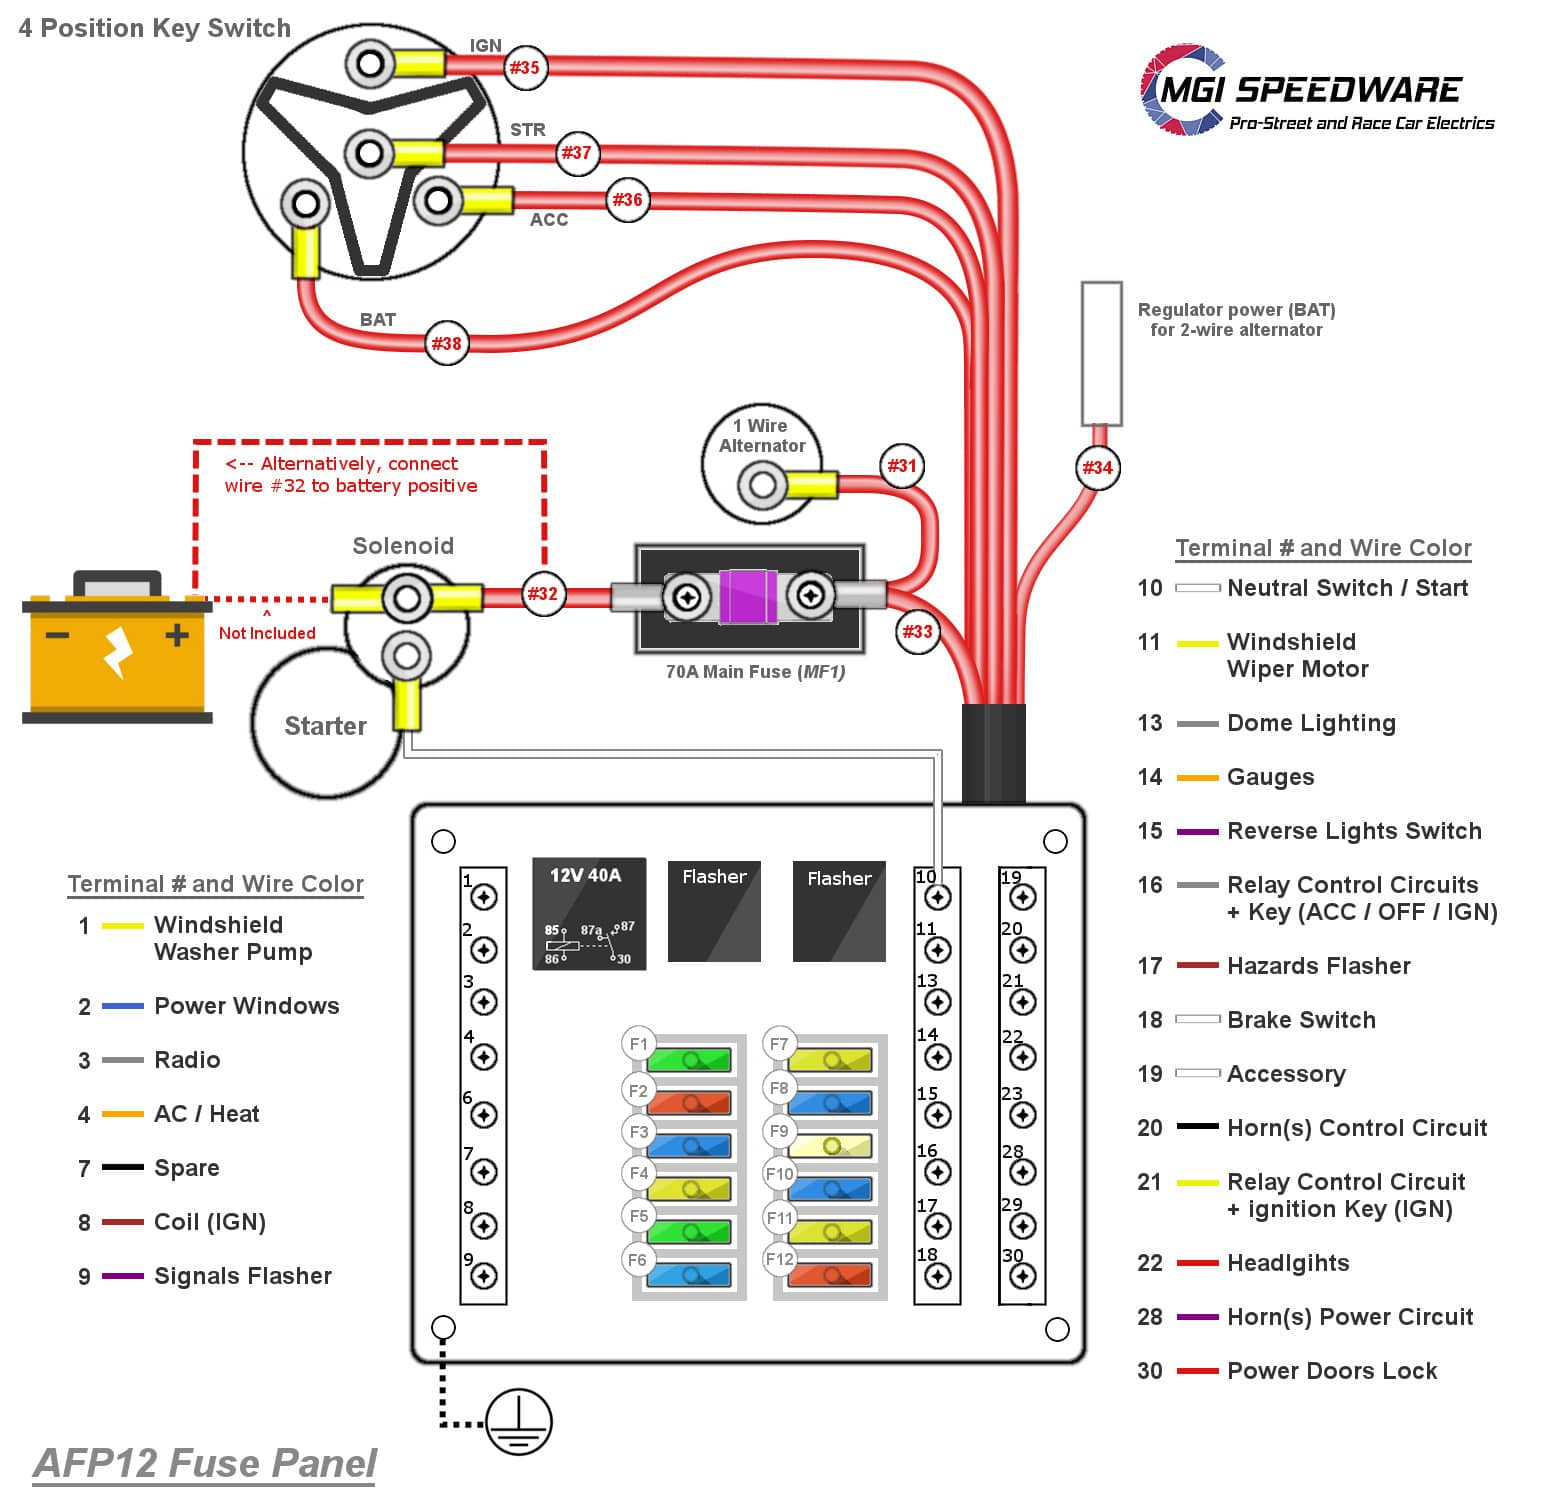 Engine Compartment Fuse Diagram Wiring Diagram